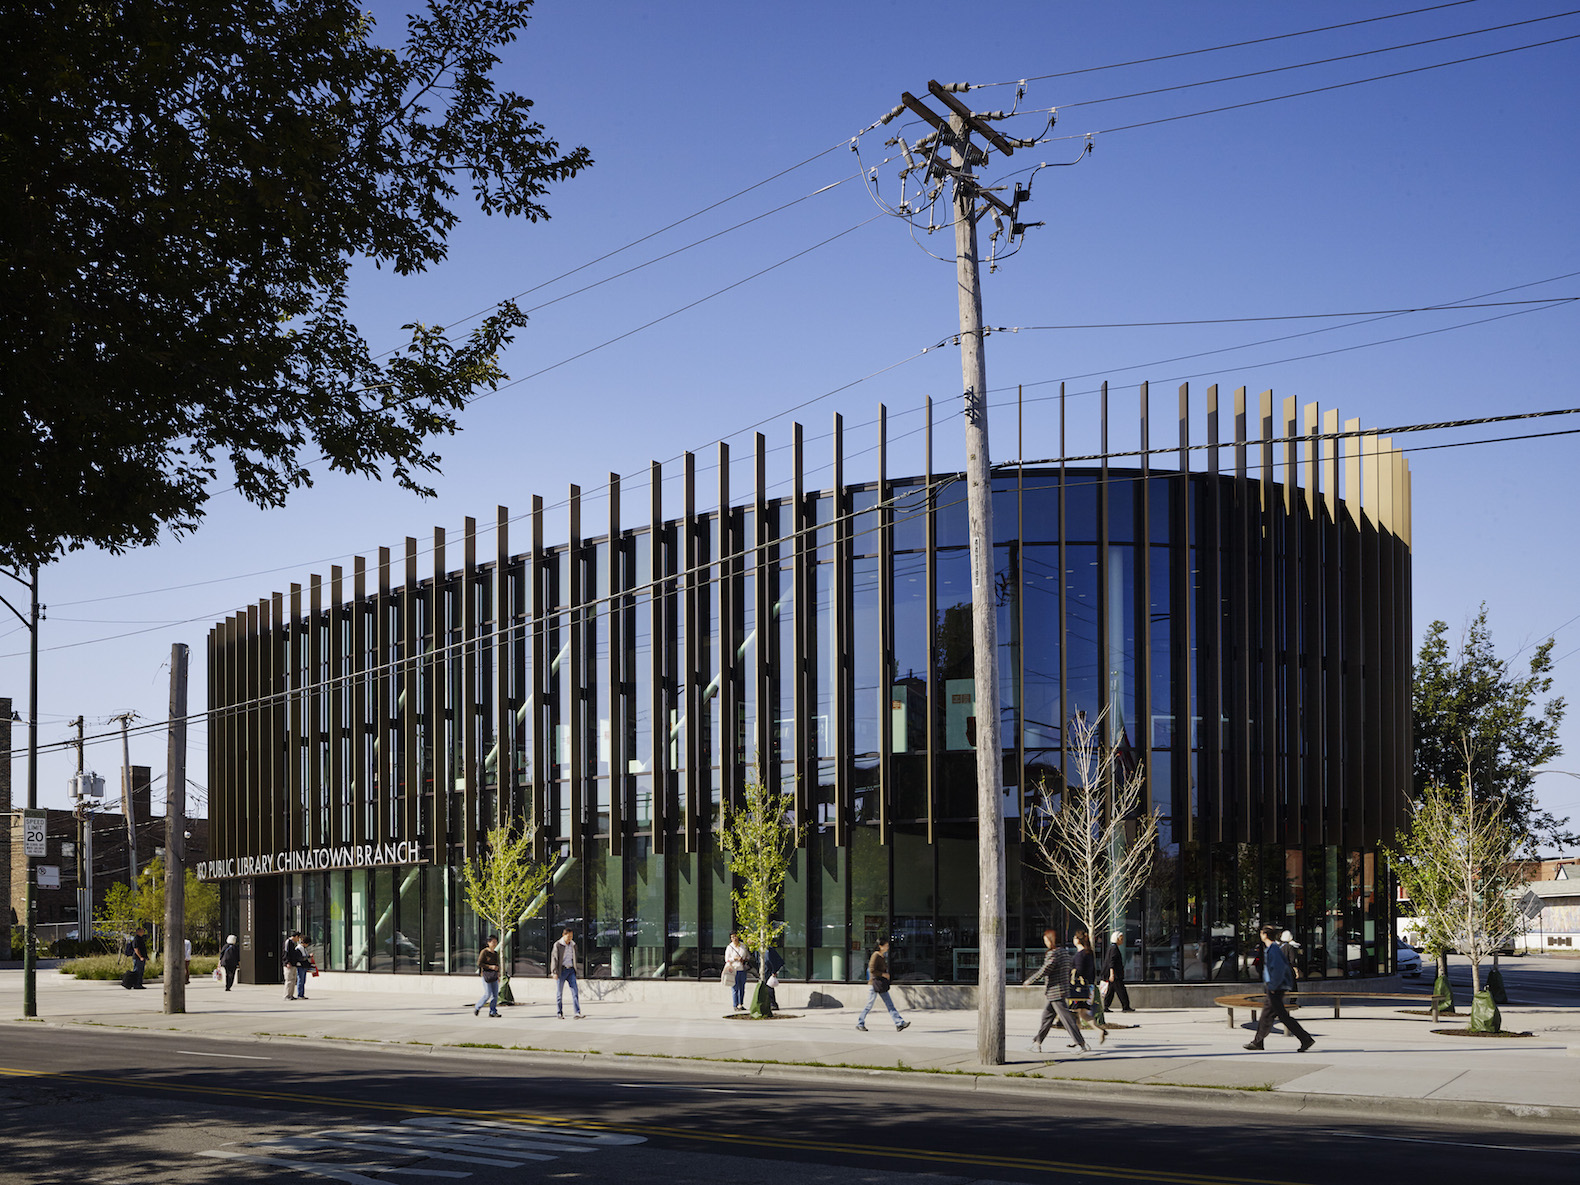 Leed Gold Seeking Chicago Chinatown Library Embodies Ancient Feng